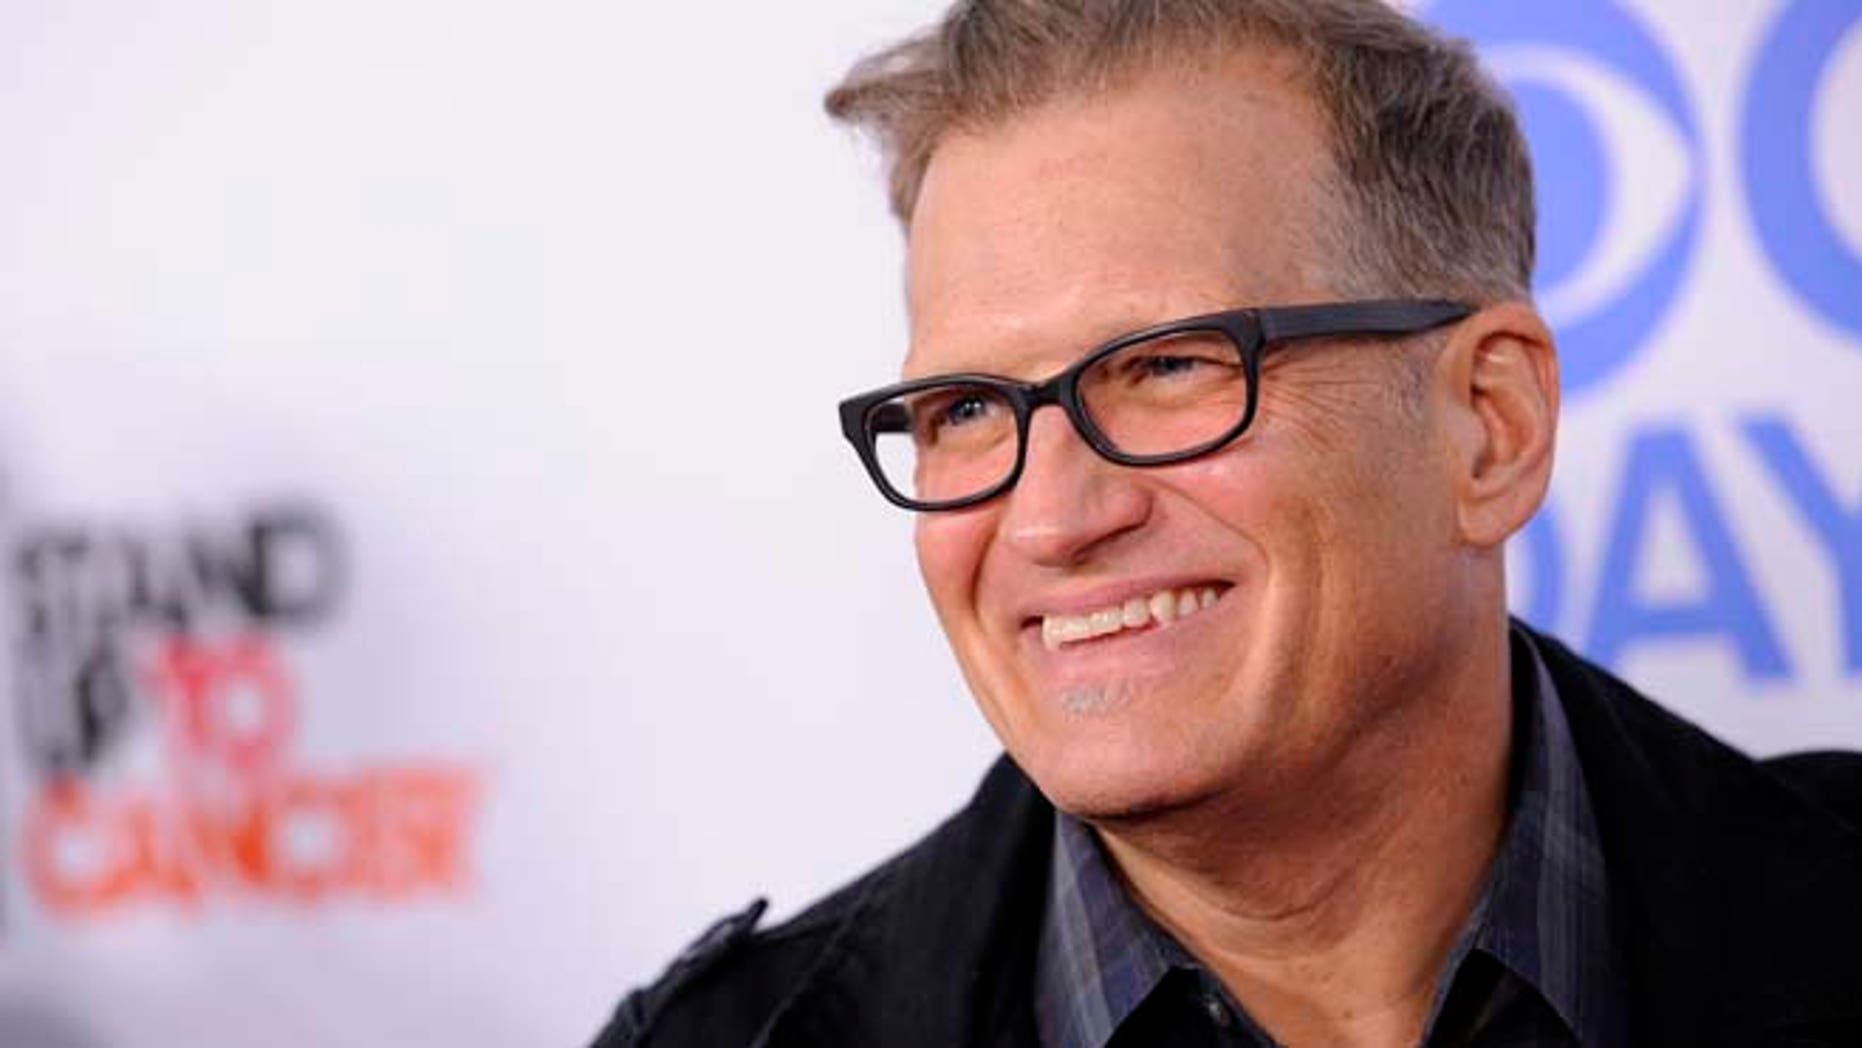 Oct. 8, 2013: In this file photo, Drew Carey arrives at the CBS Daytime After Dark comedy event at The Comedy Store in West Hollywood, Calif. (Chris Pizzello/Invision/AP)